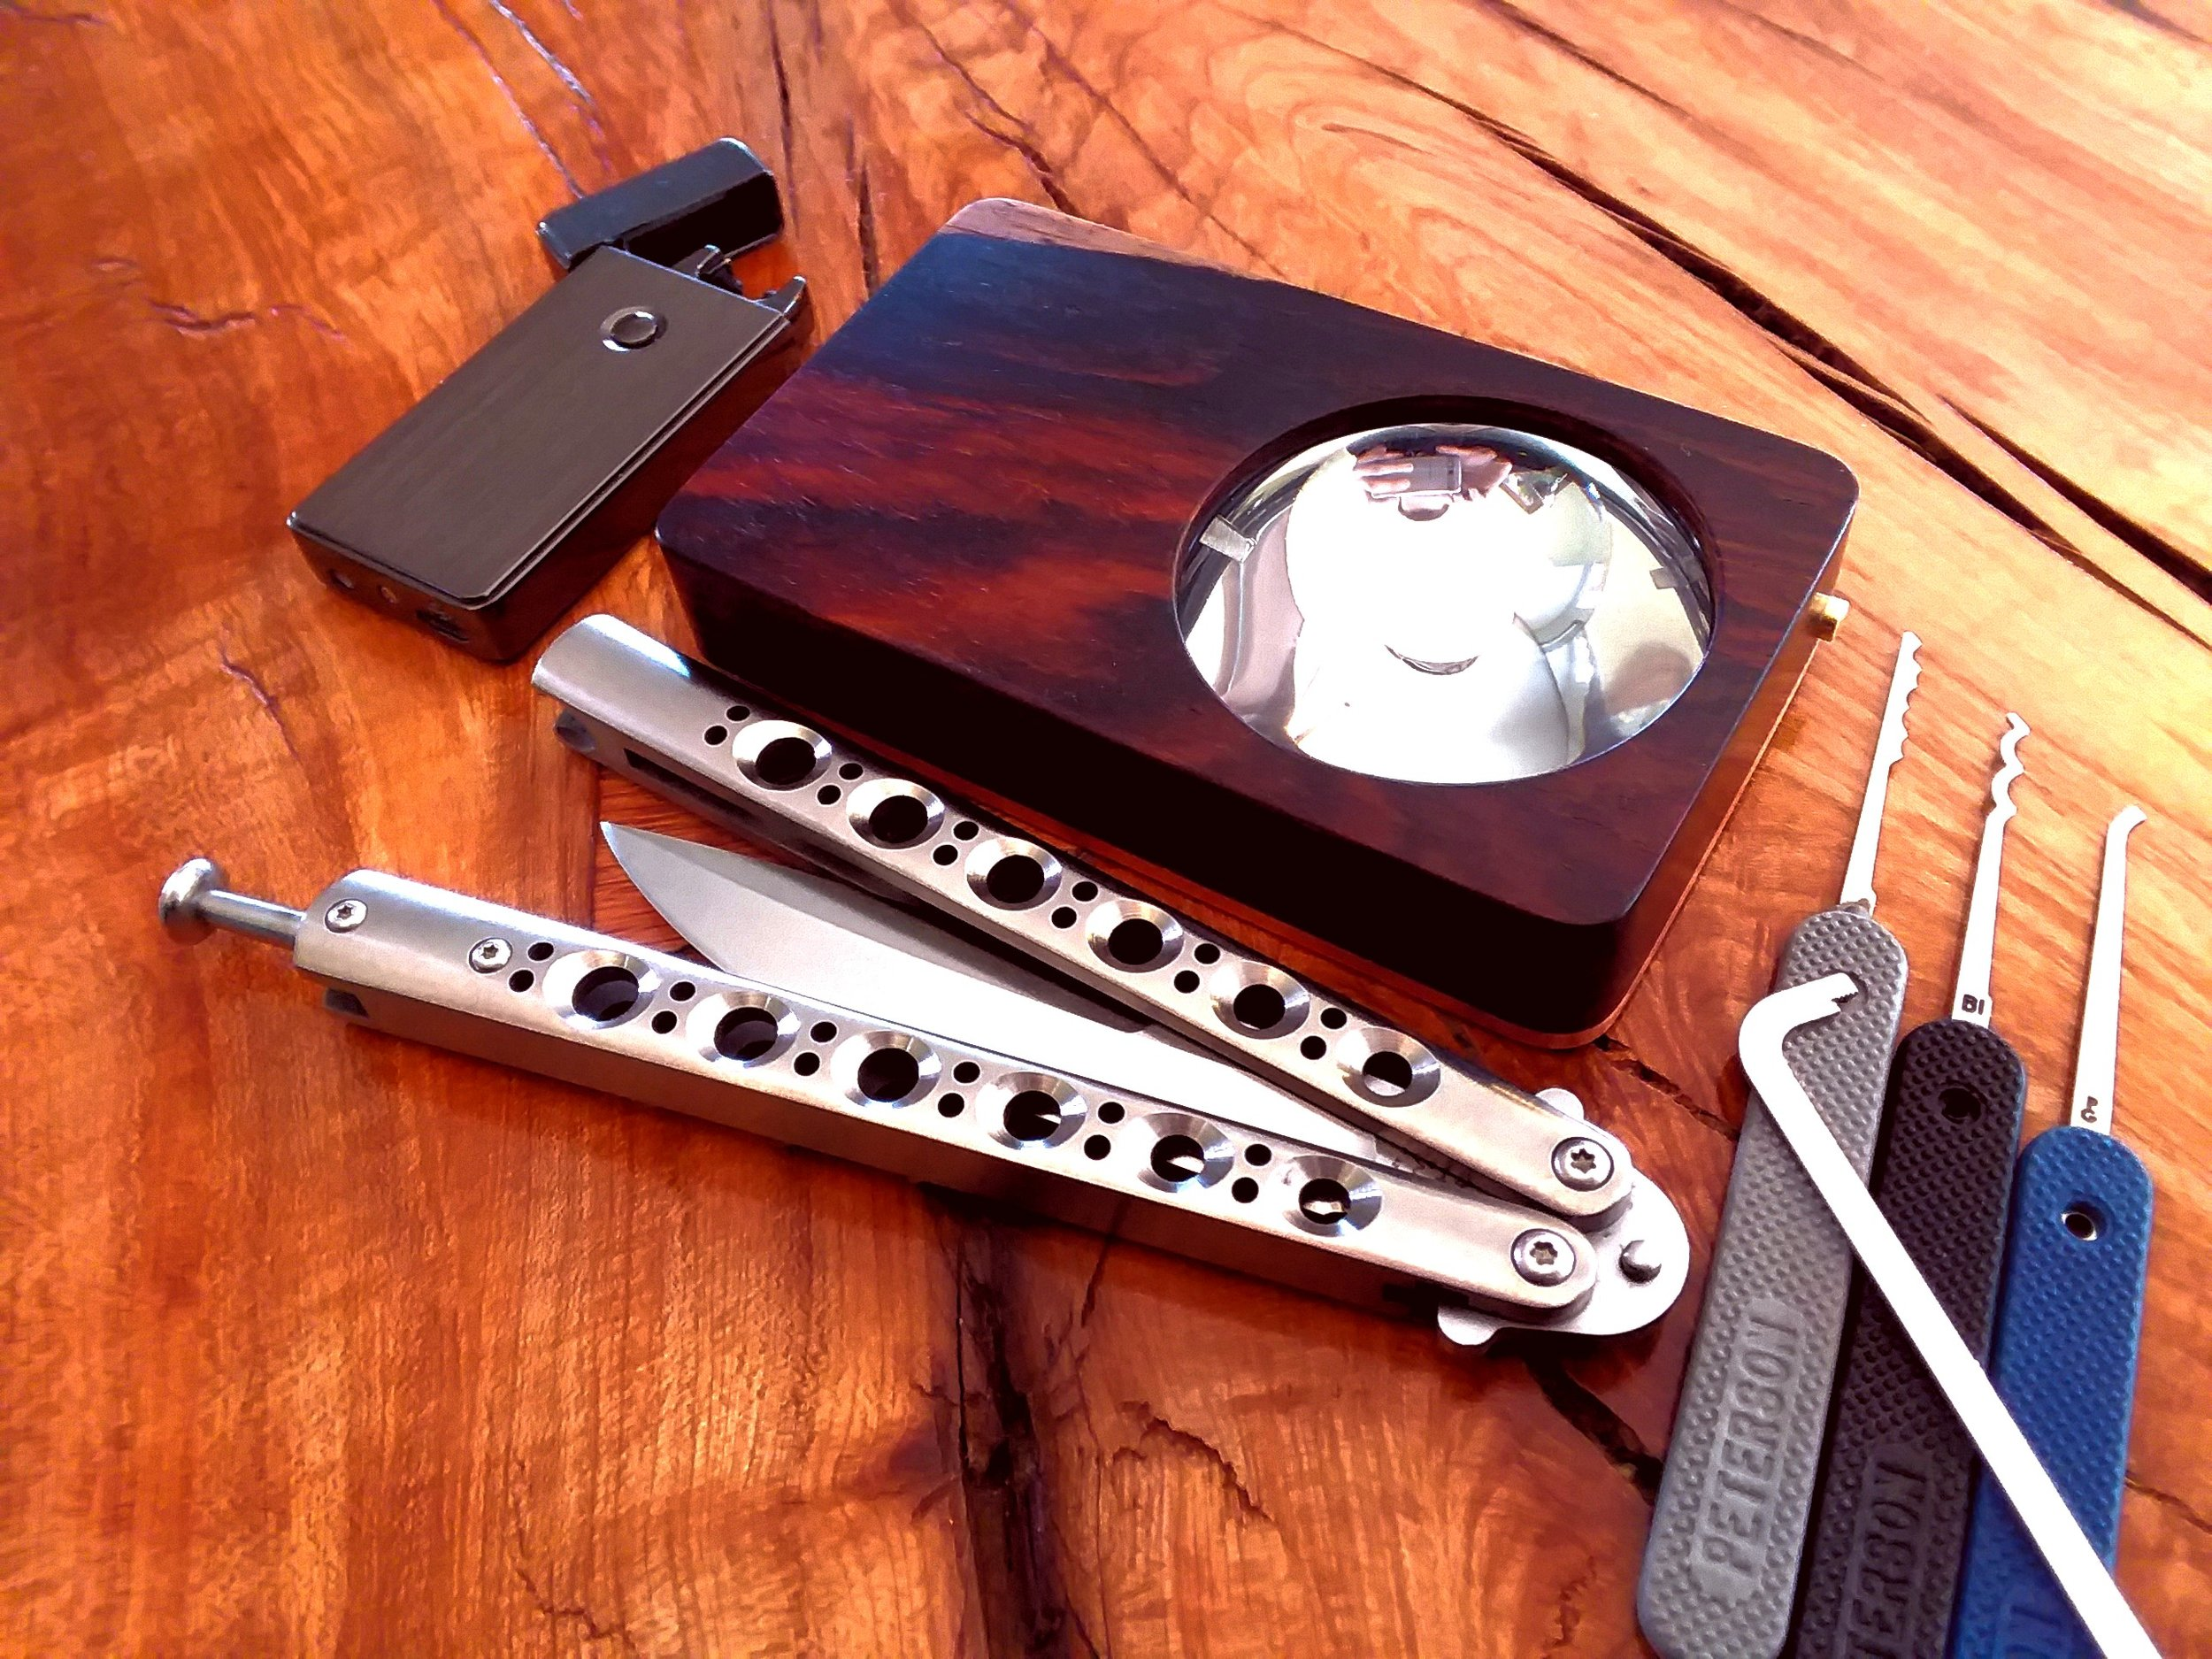 EoS in cocobolo with copper heatsink, Peterson lock picks, Tesla lighter, Benchmade model 42